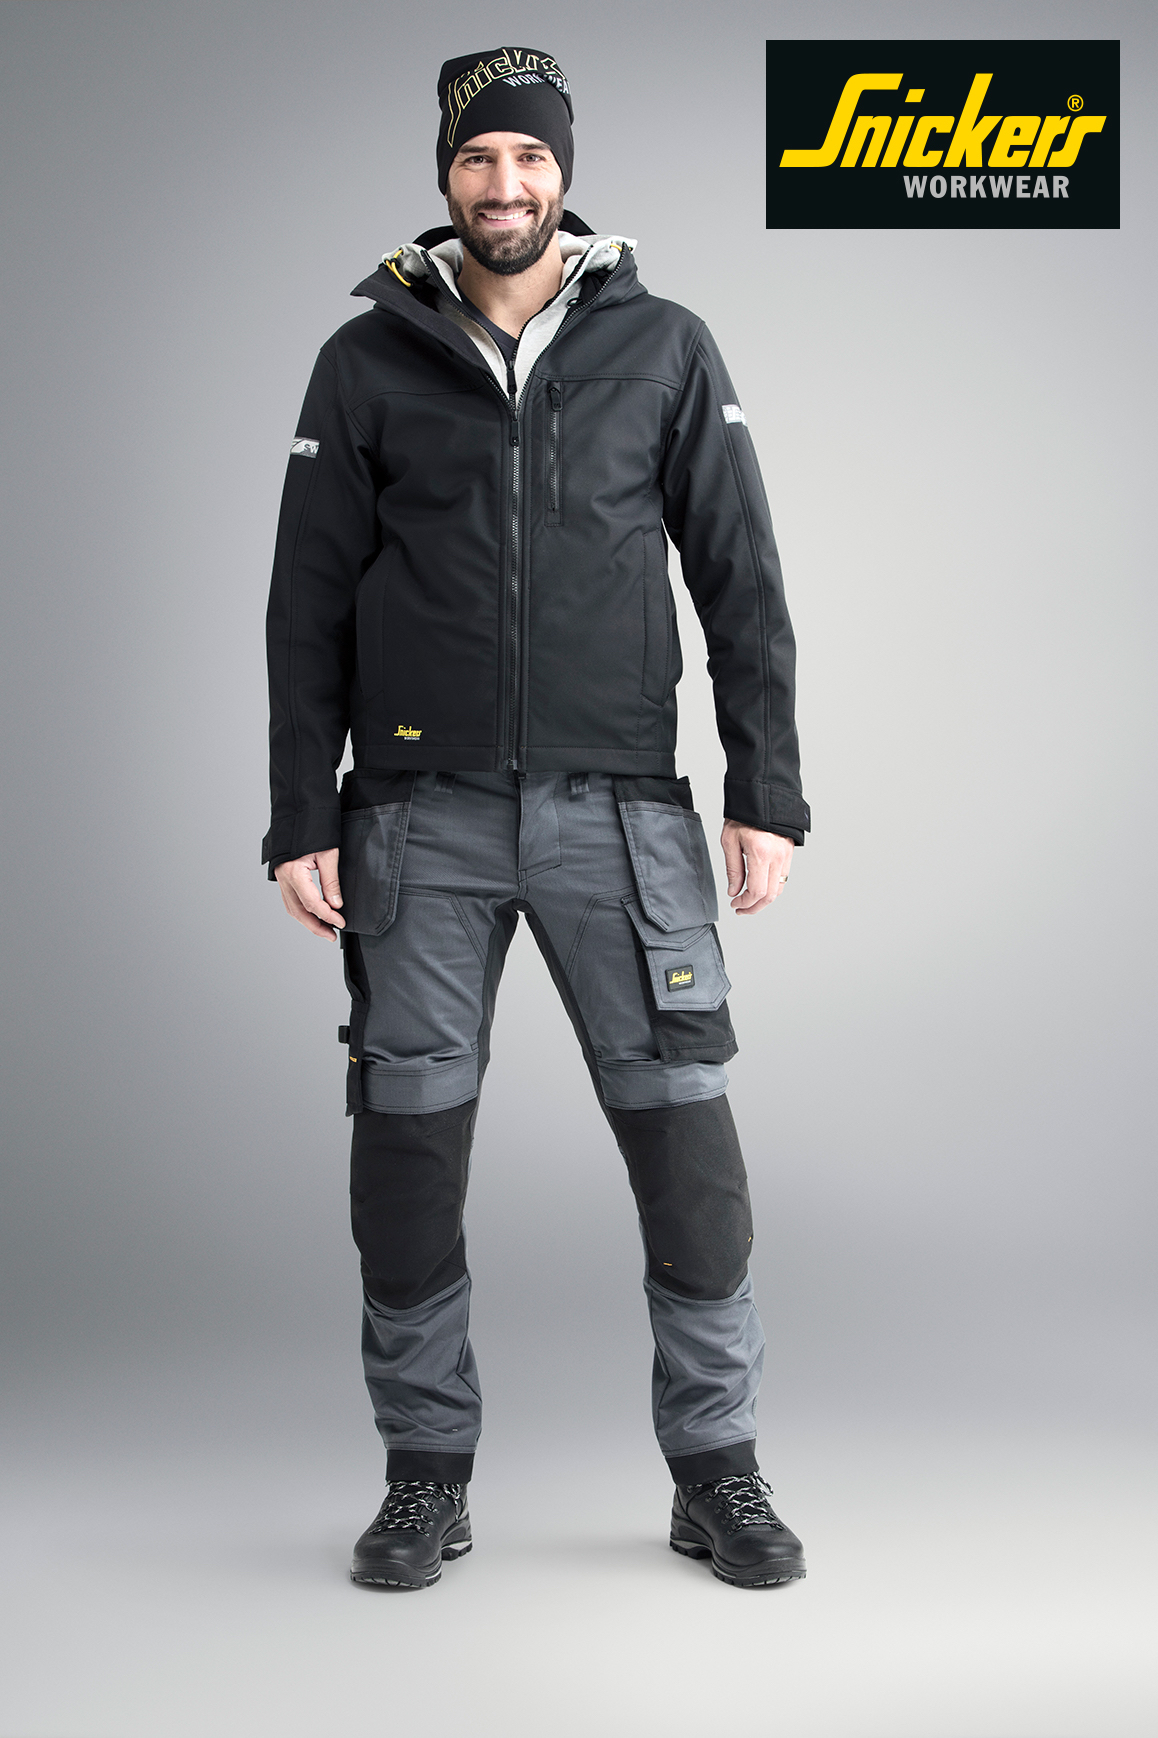 Win a winter workwear pack from Snickers